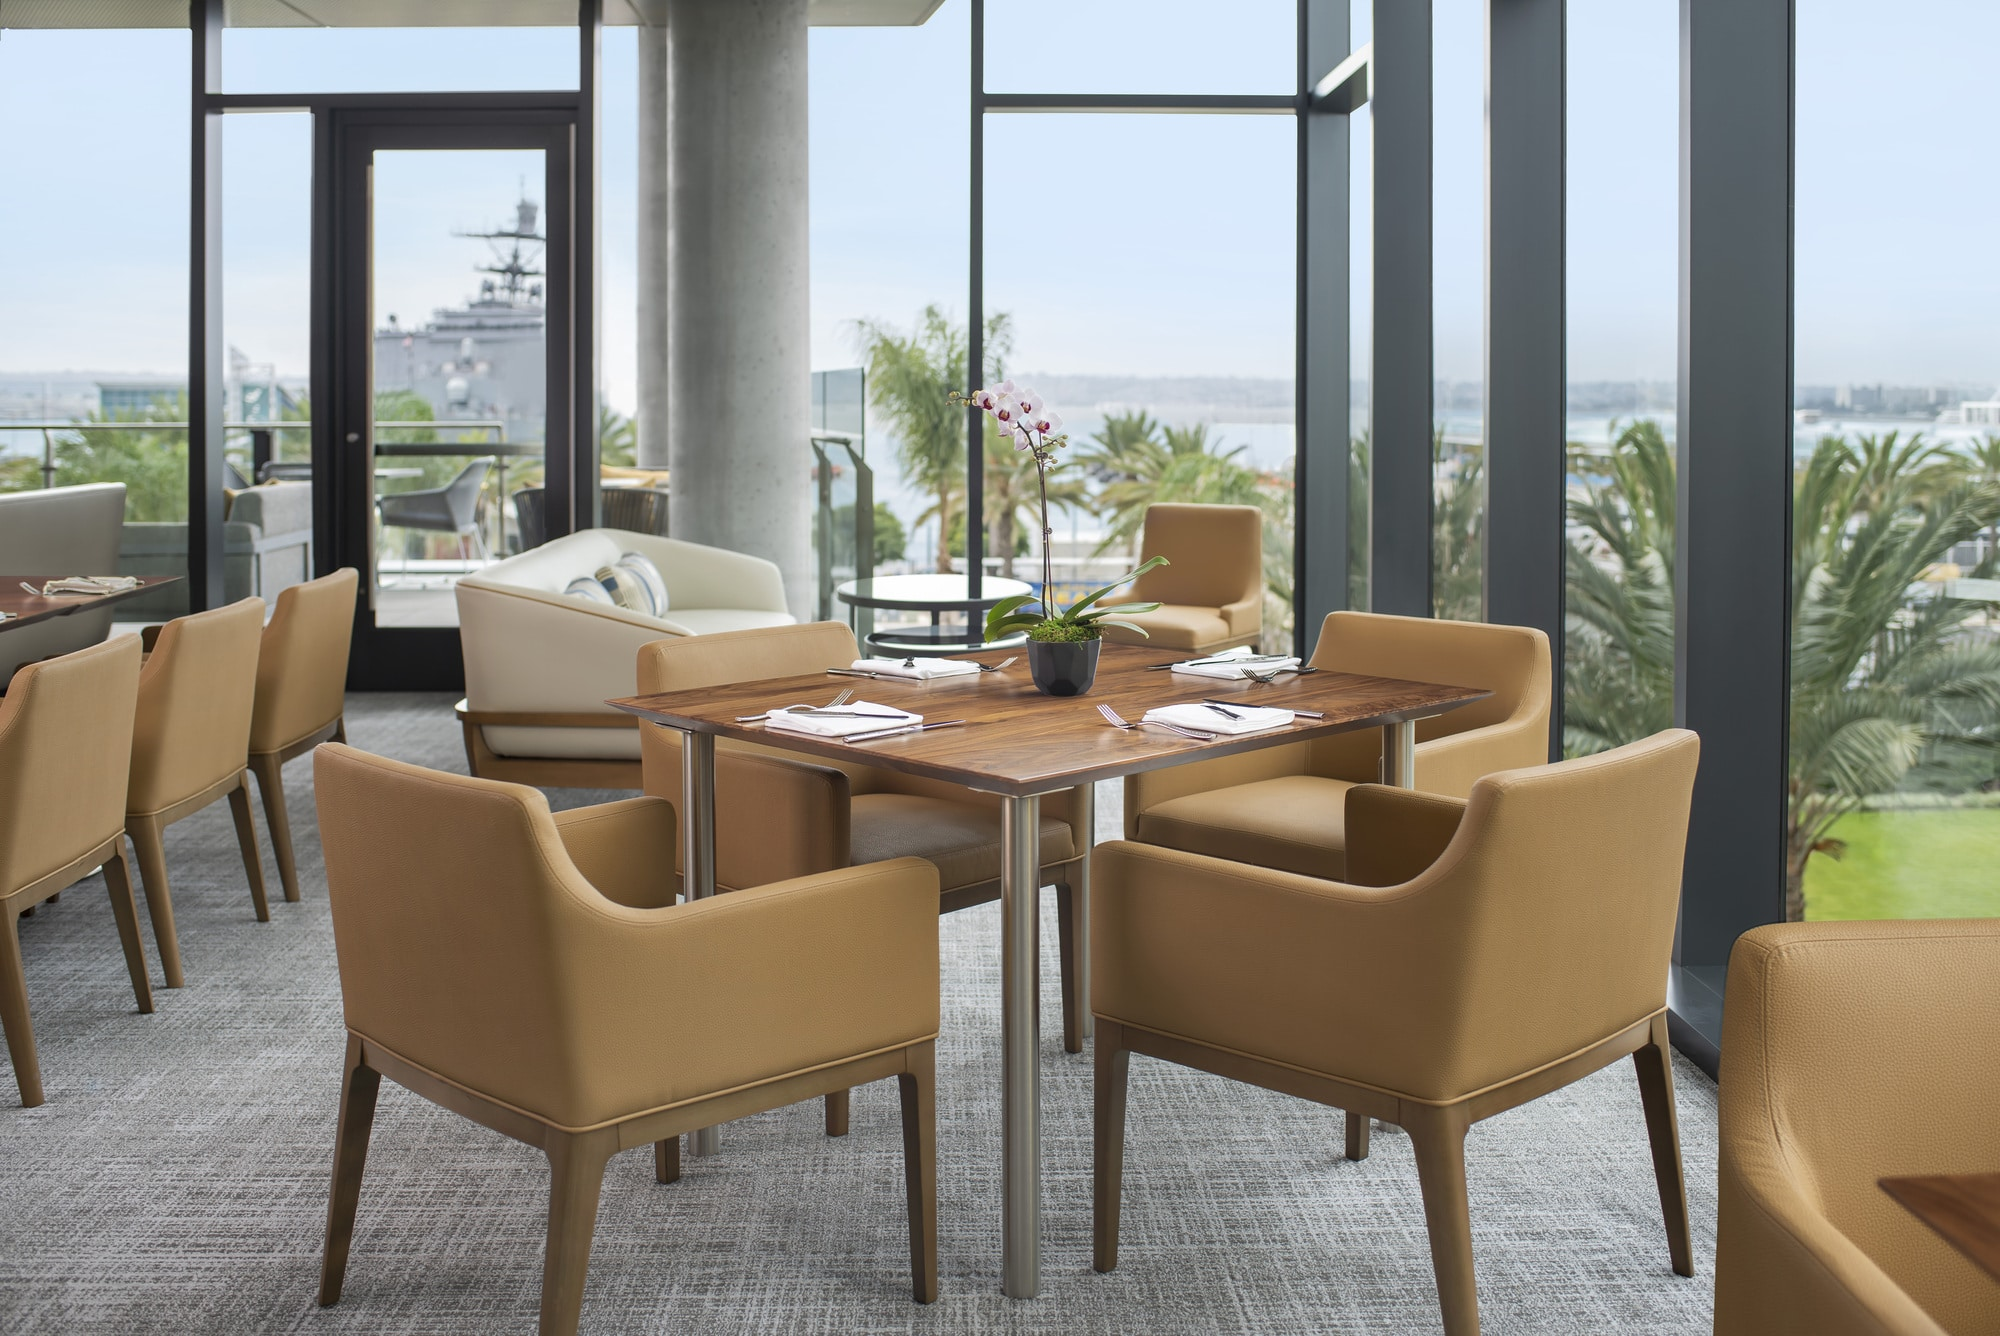 Tables in the Club Lounge set against tall glass walls with views overlooking the bay.